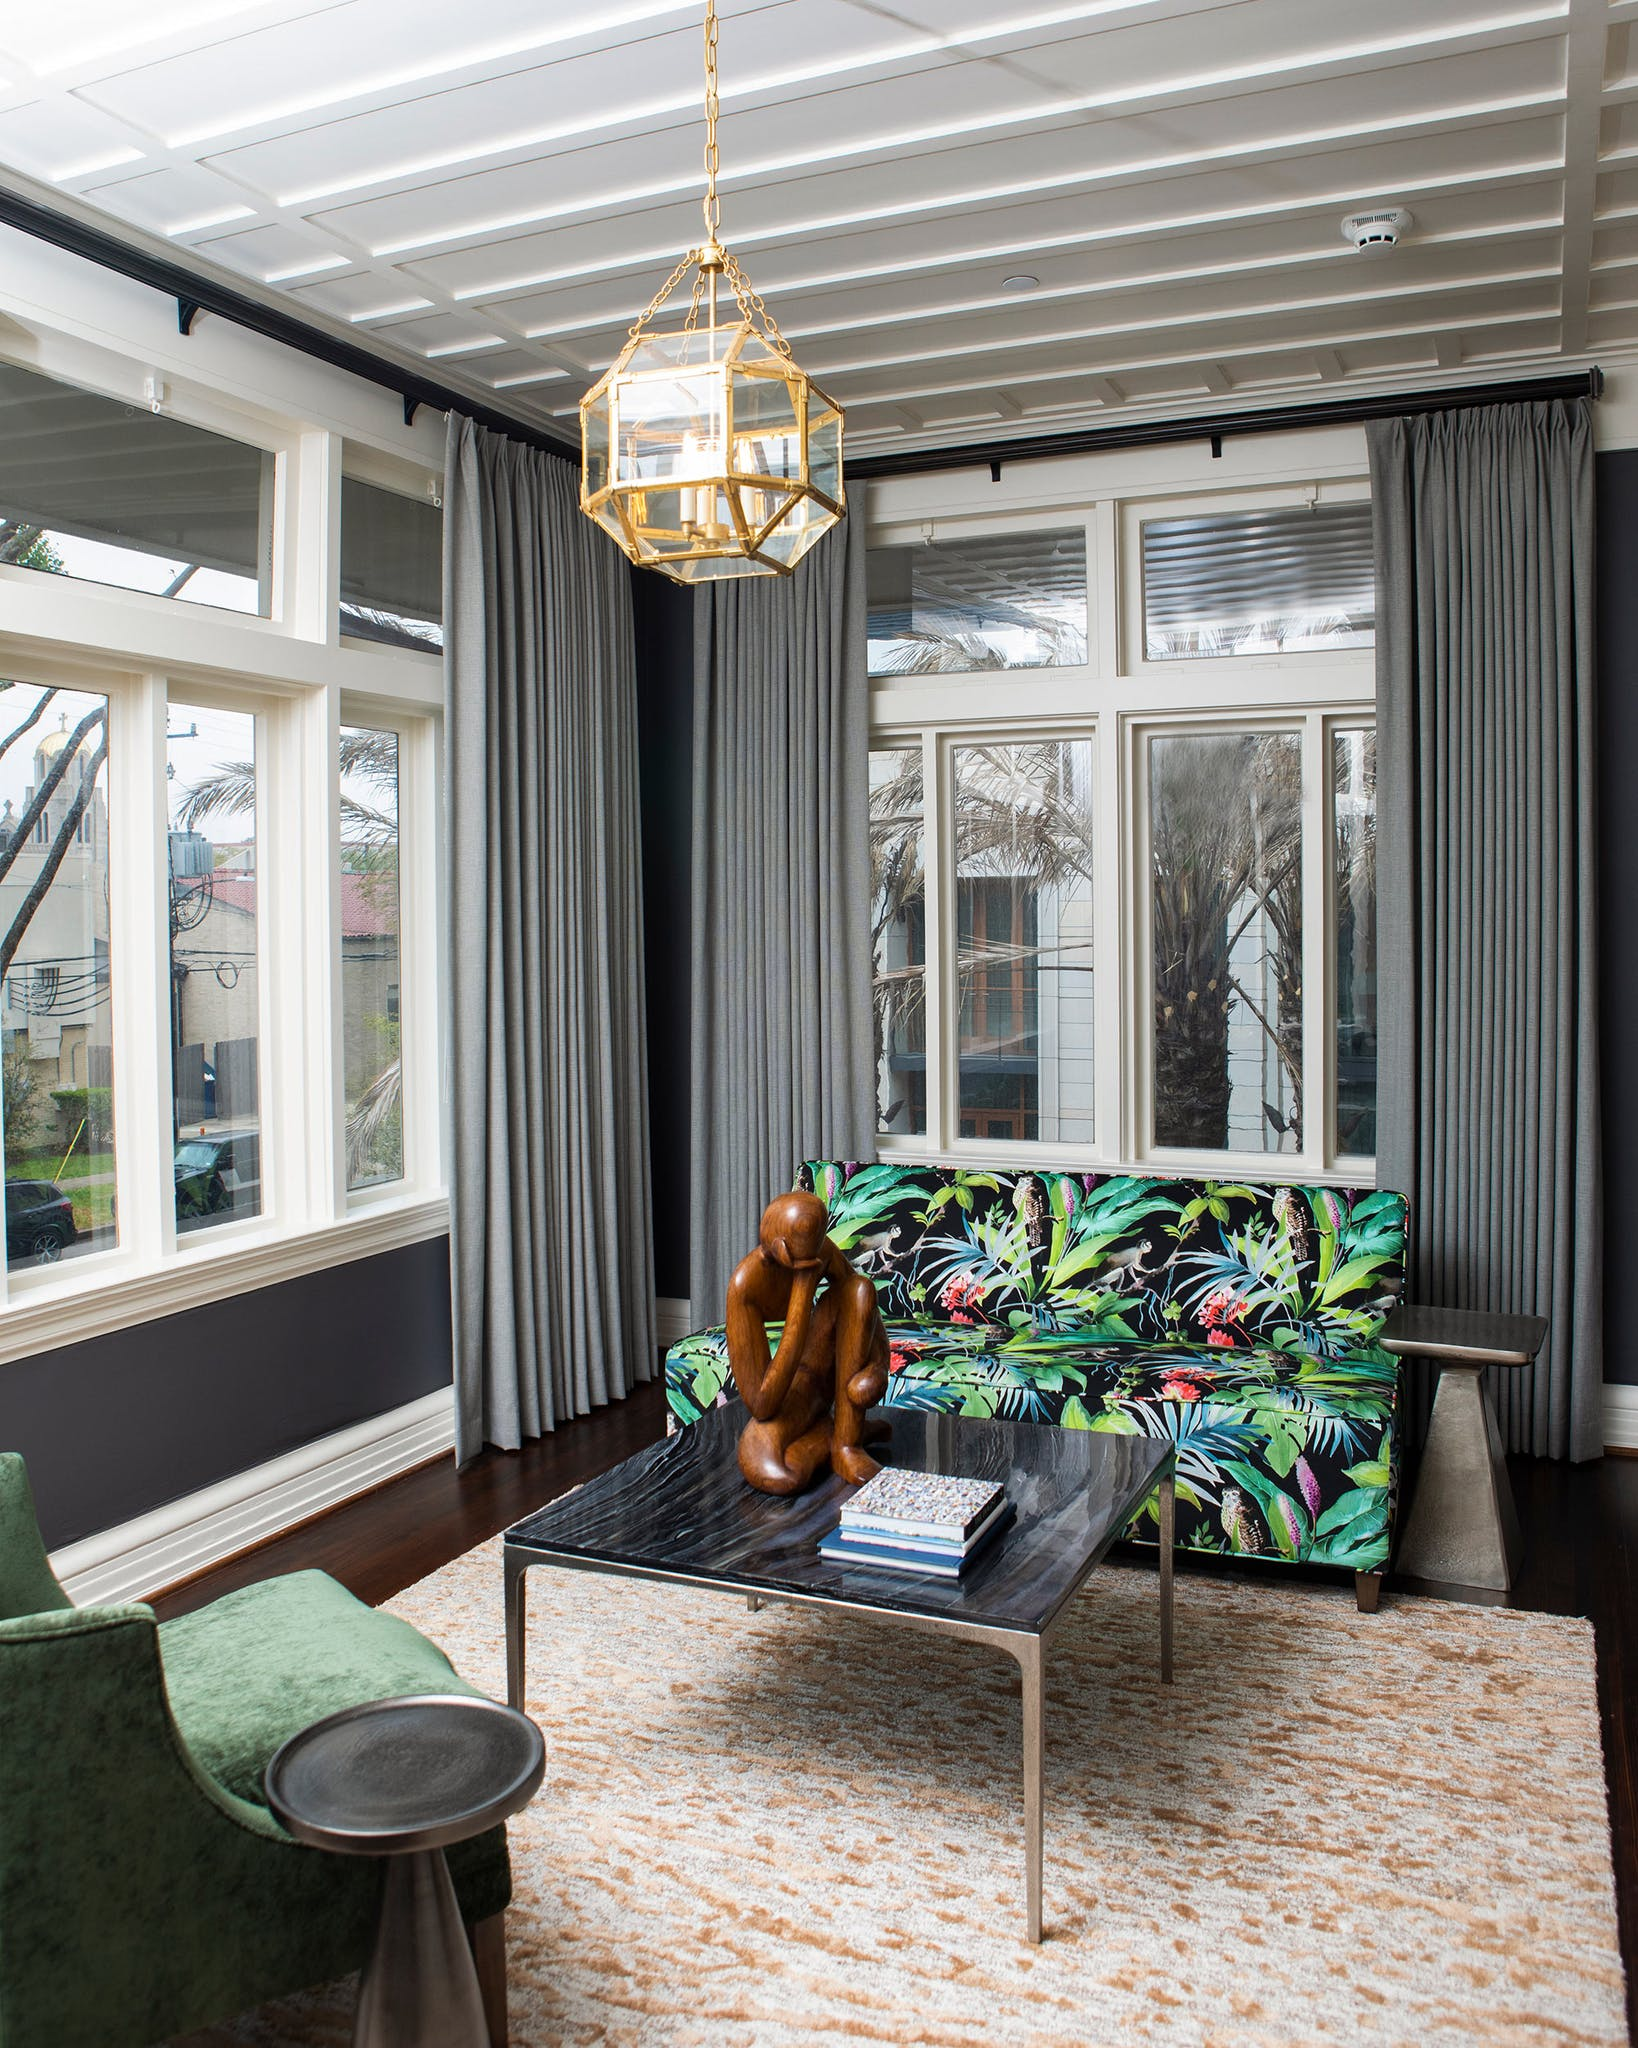 Each of the mansion's five suites has an original sleeping porch that has been transformed into a private sunroom.